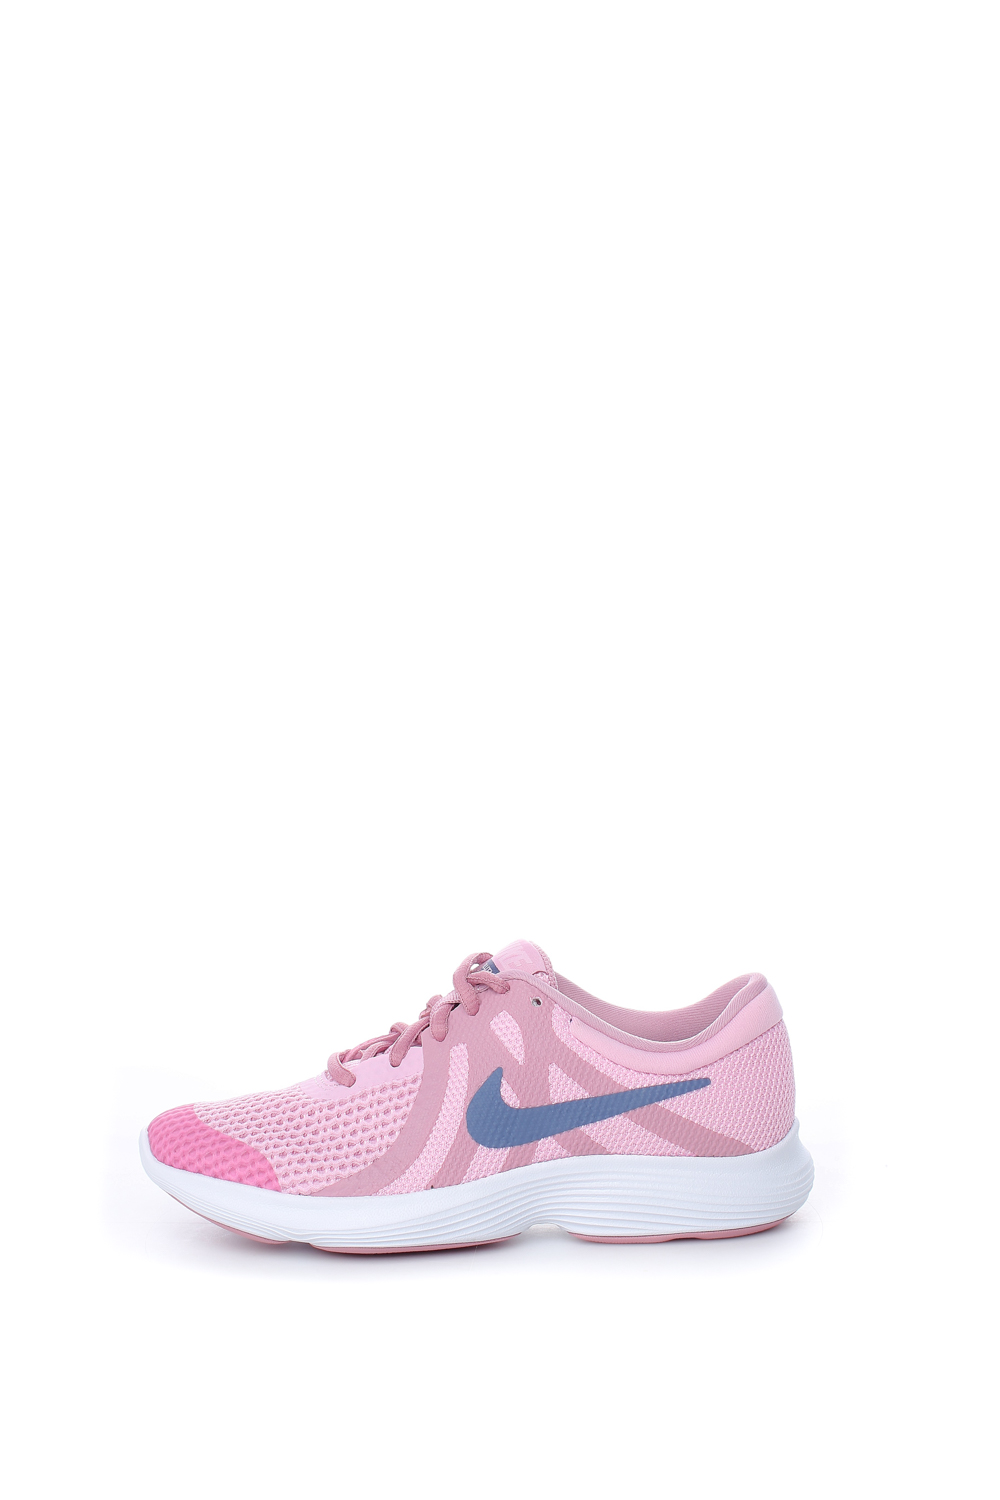 ecdbf61a6ec -30% Factory Outlet NIKE – Παιδικά παπούτσια NIKE REVOLUTION 4 (GS) ροζ